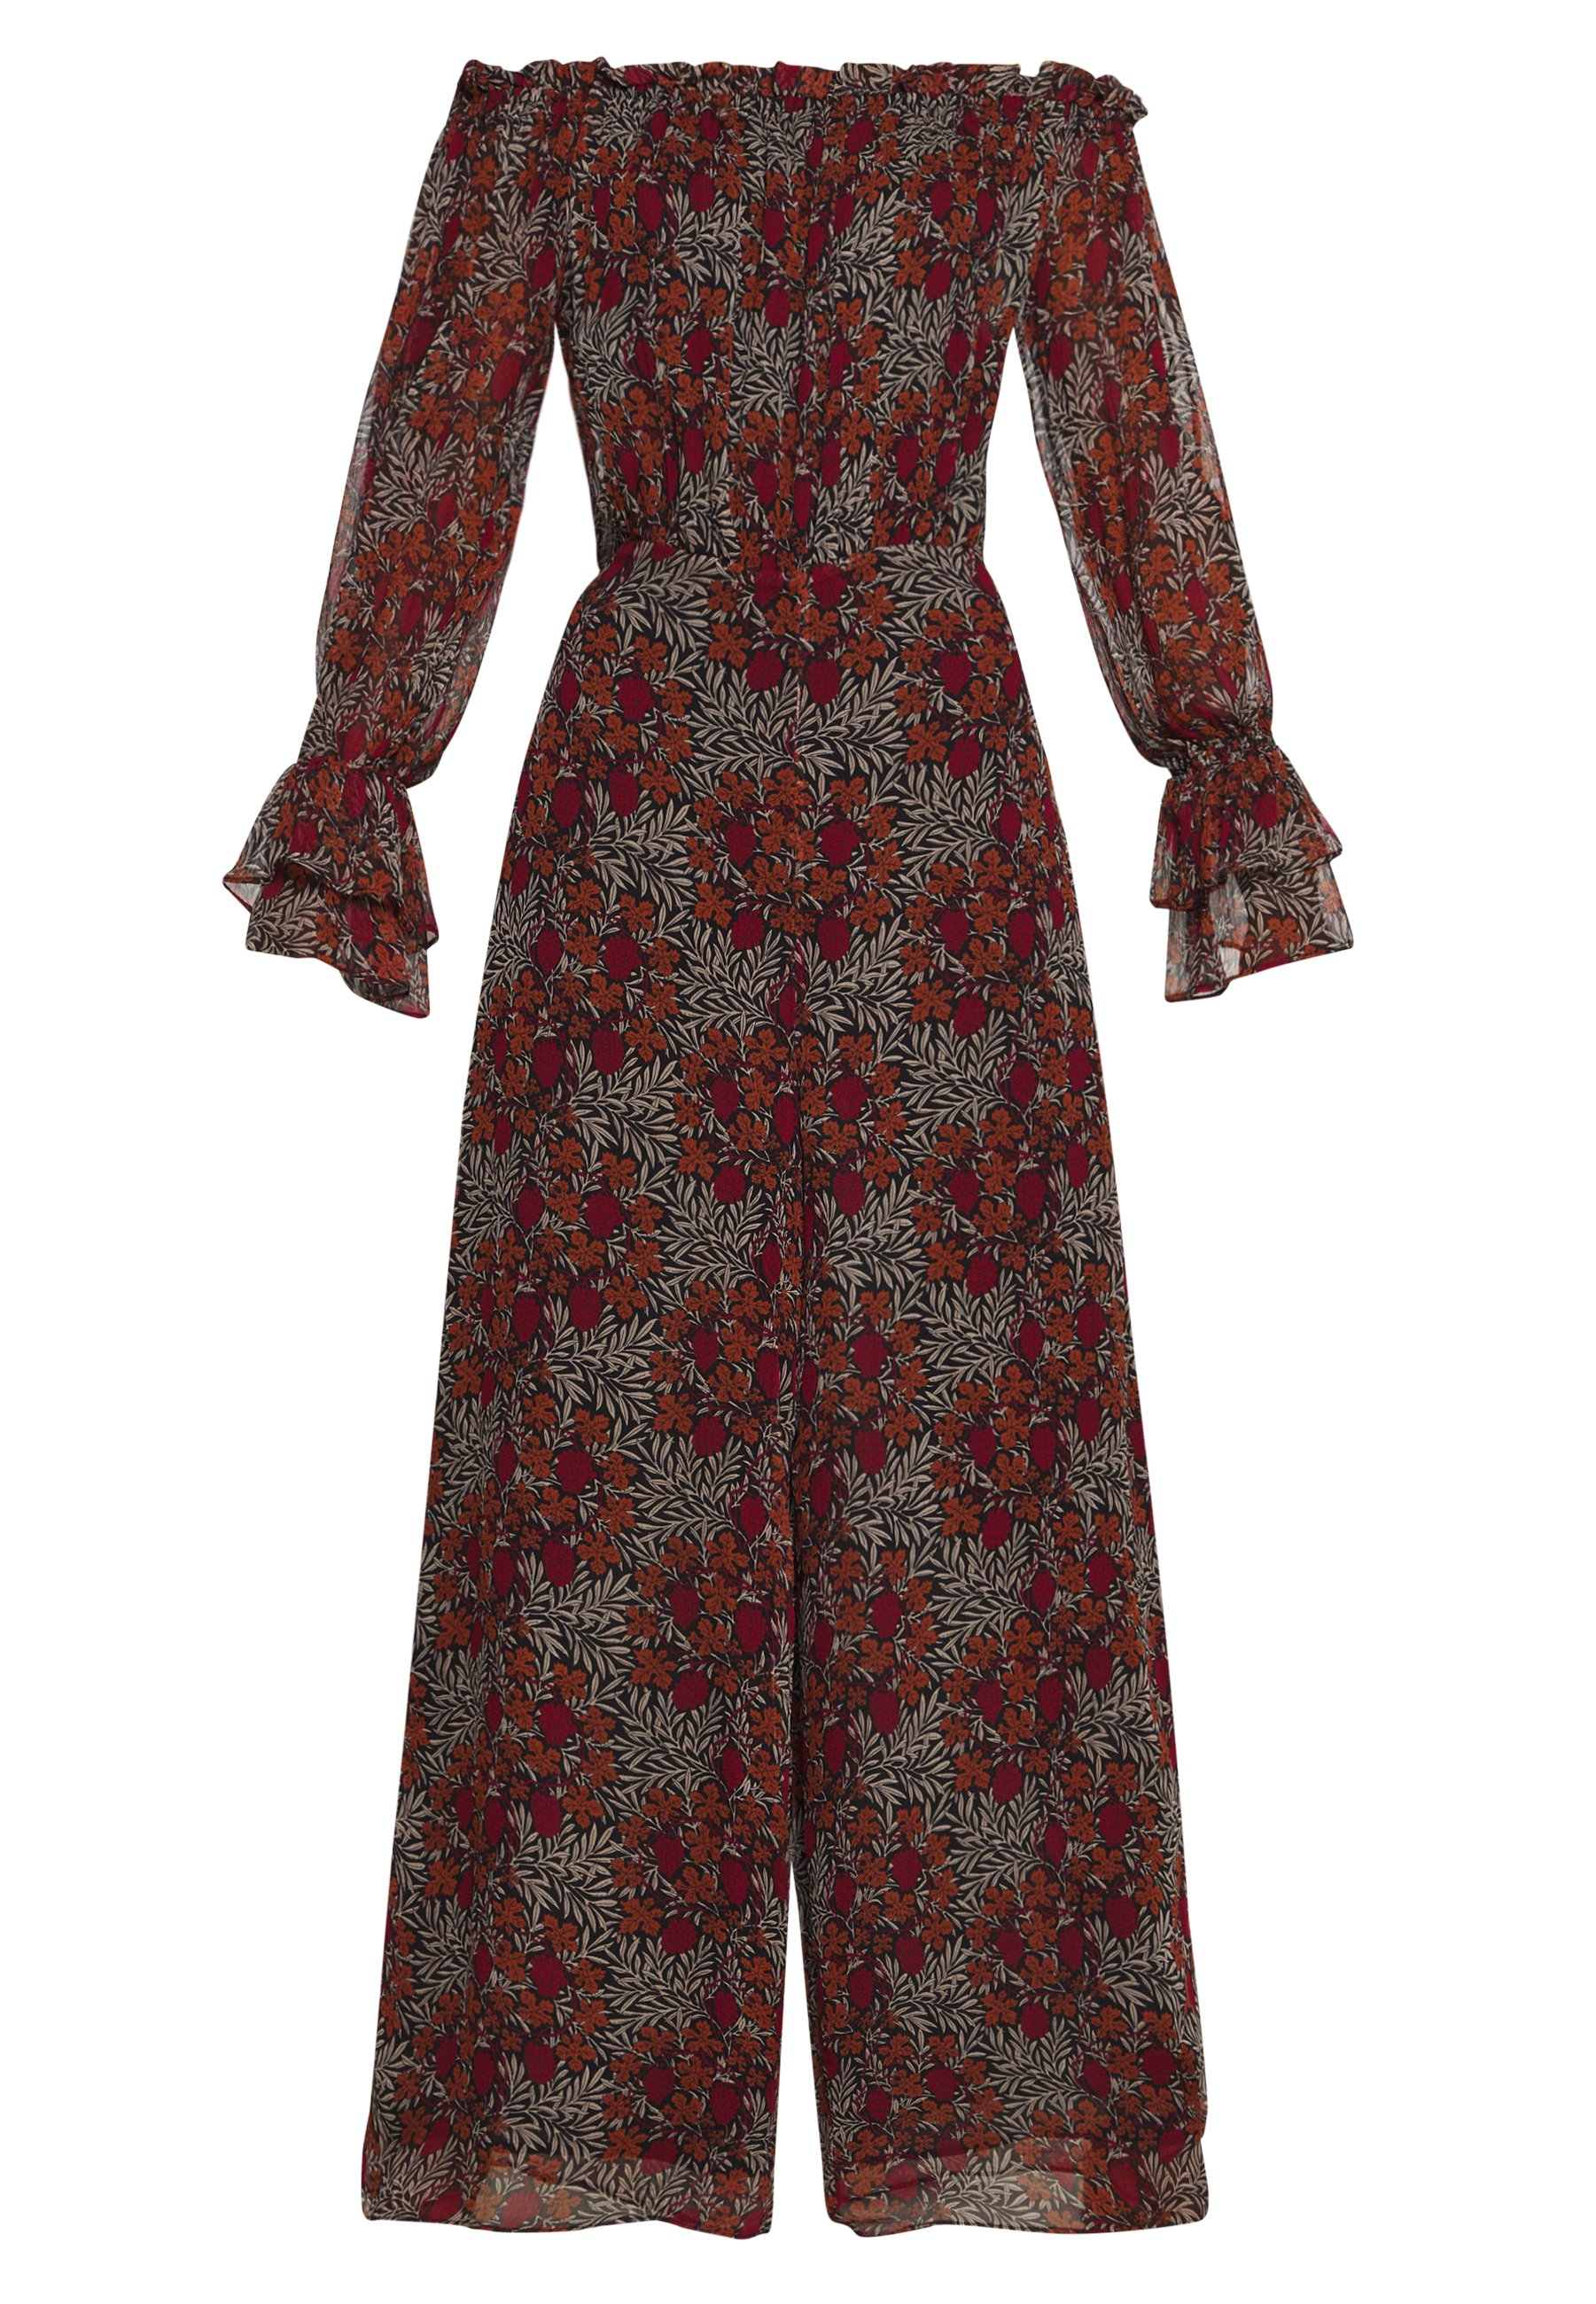 Stevie May Patience Jumpsuit - Overall / Kimono Garden